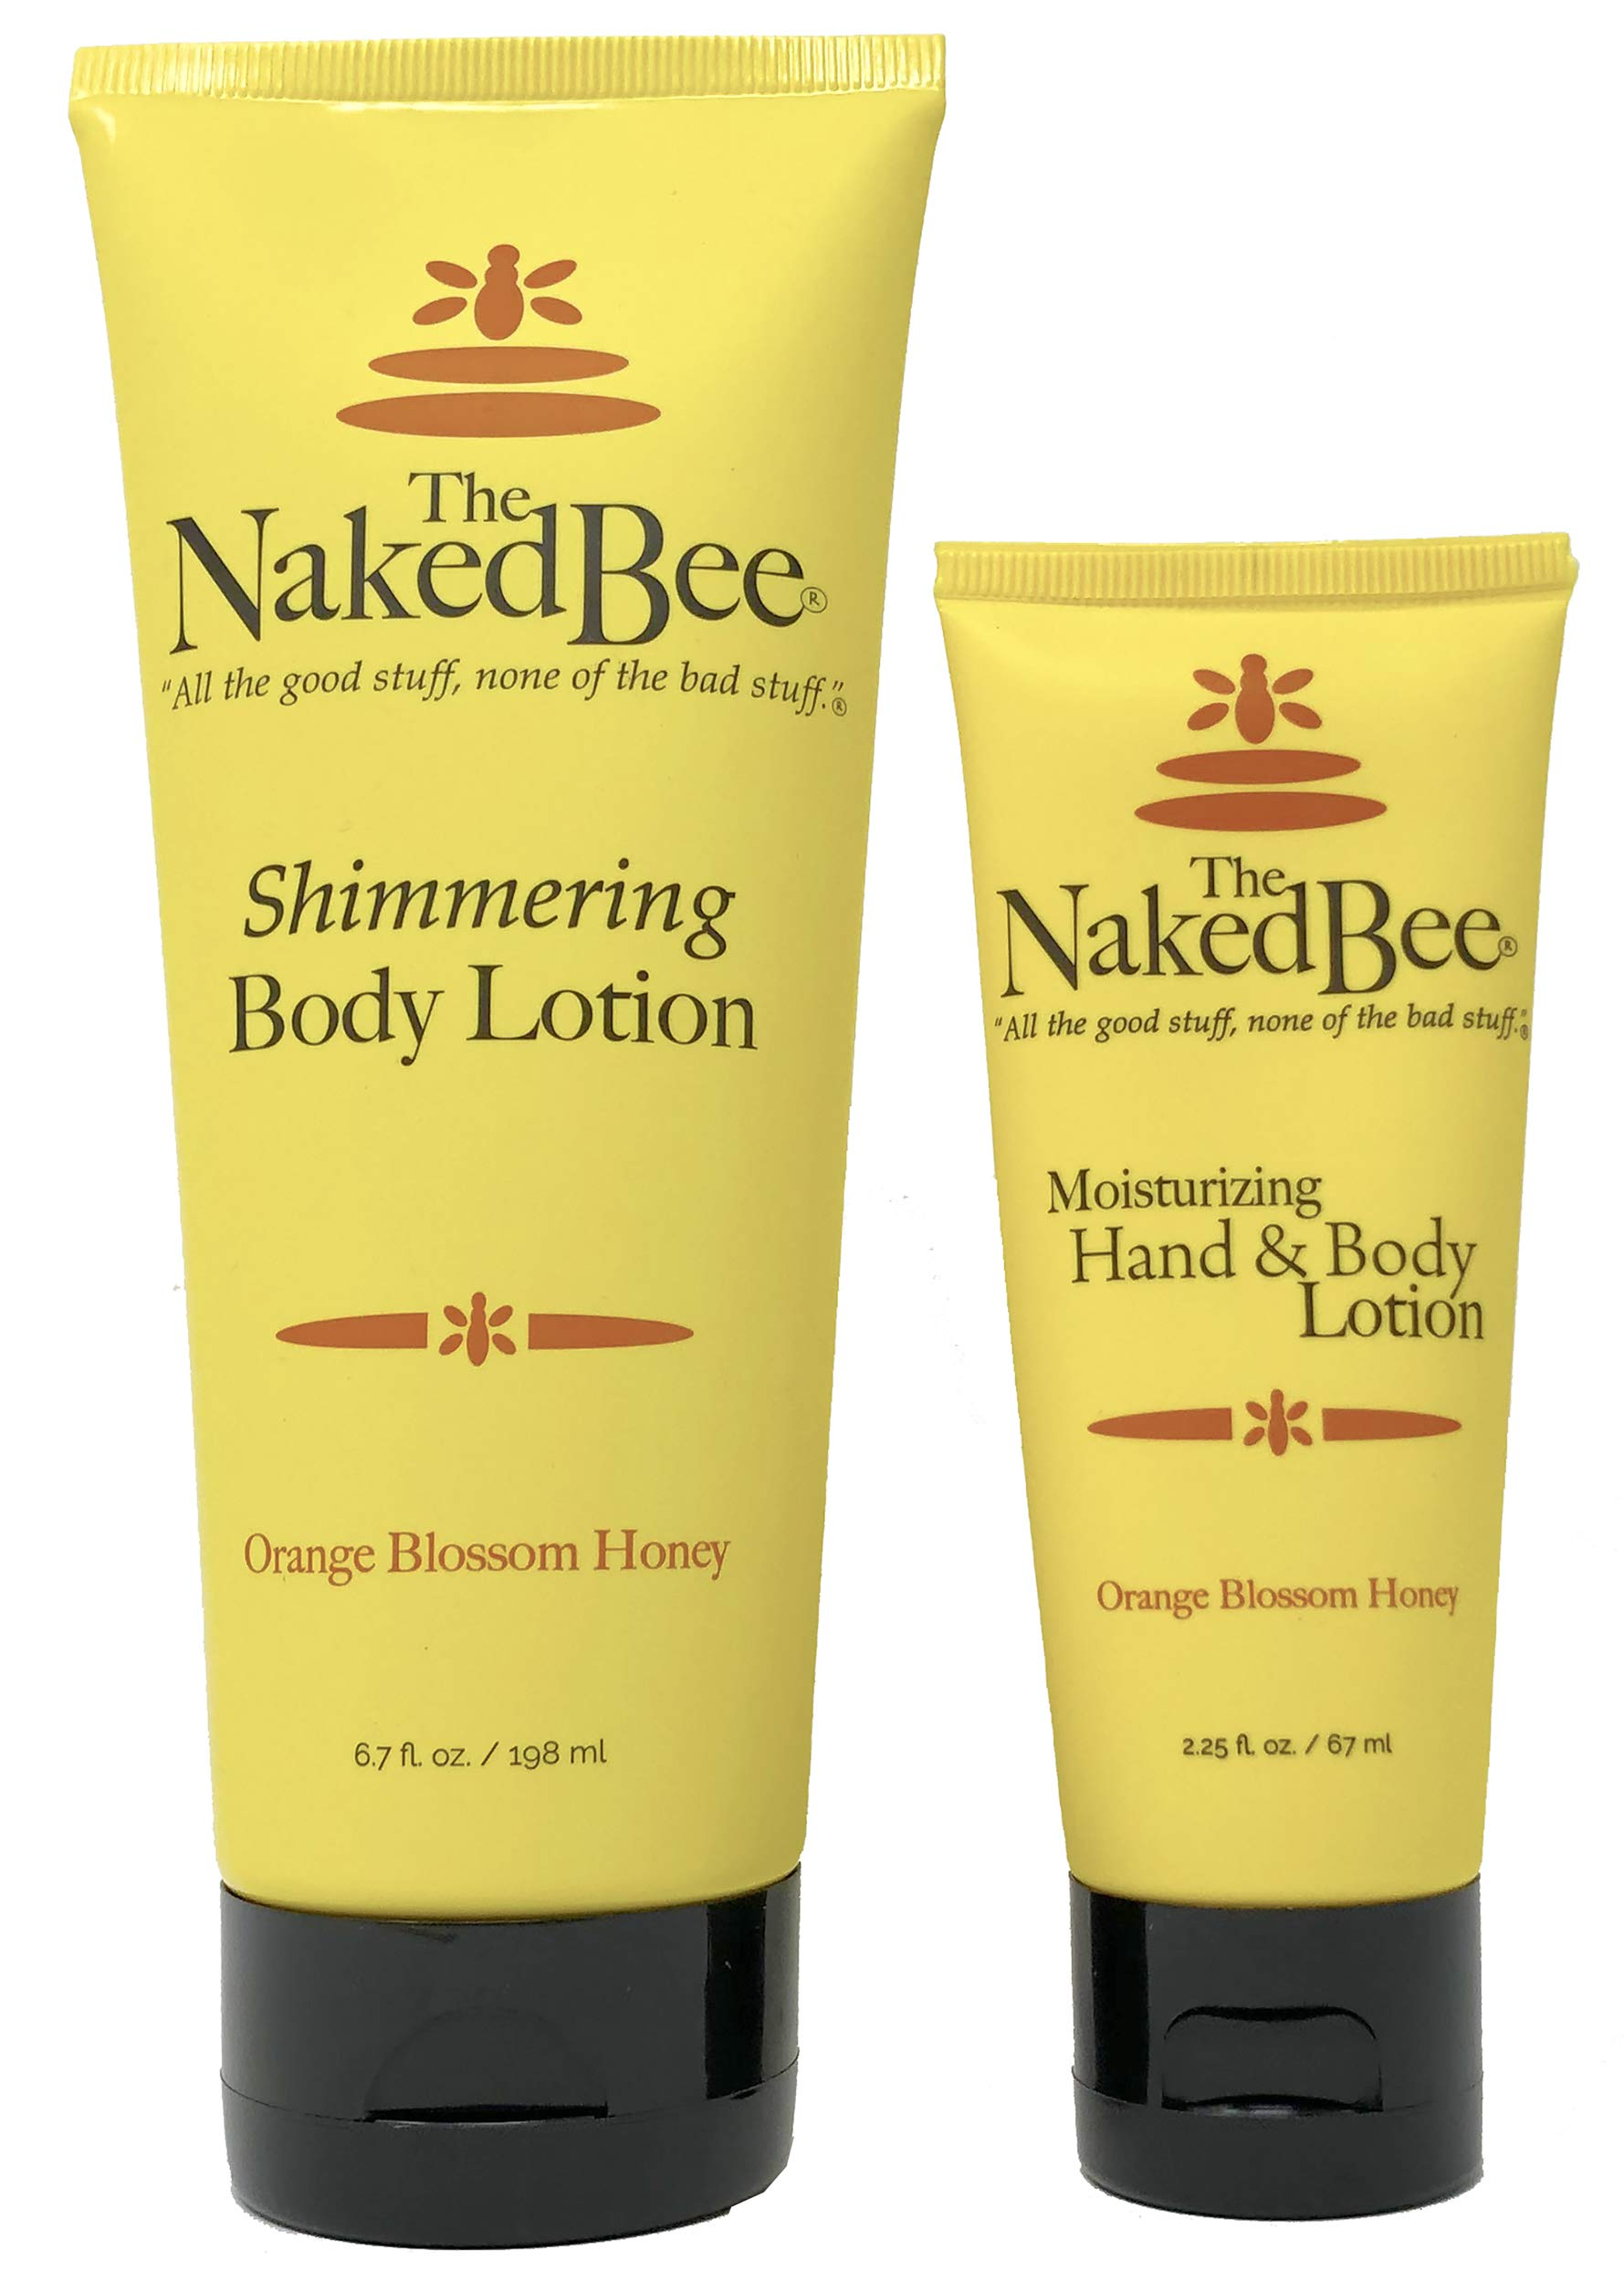 The Naked Bee Orange Blossom Honey Shimmering Body Lotion 6.7 Ounce and Moisturizing Hand & Body Lotion 2.25 Ounce - Pack of 2 with Tru Inertia Nail File by Tru Inertia